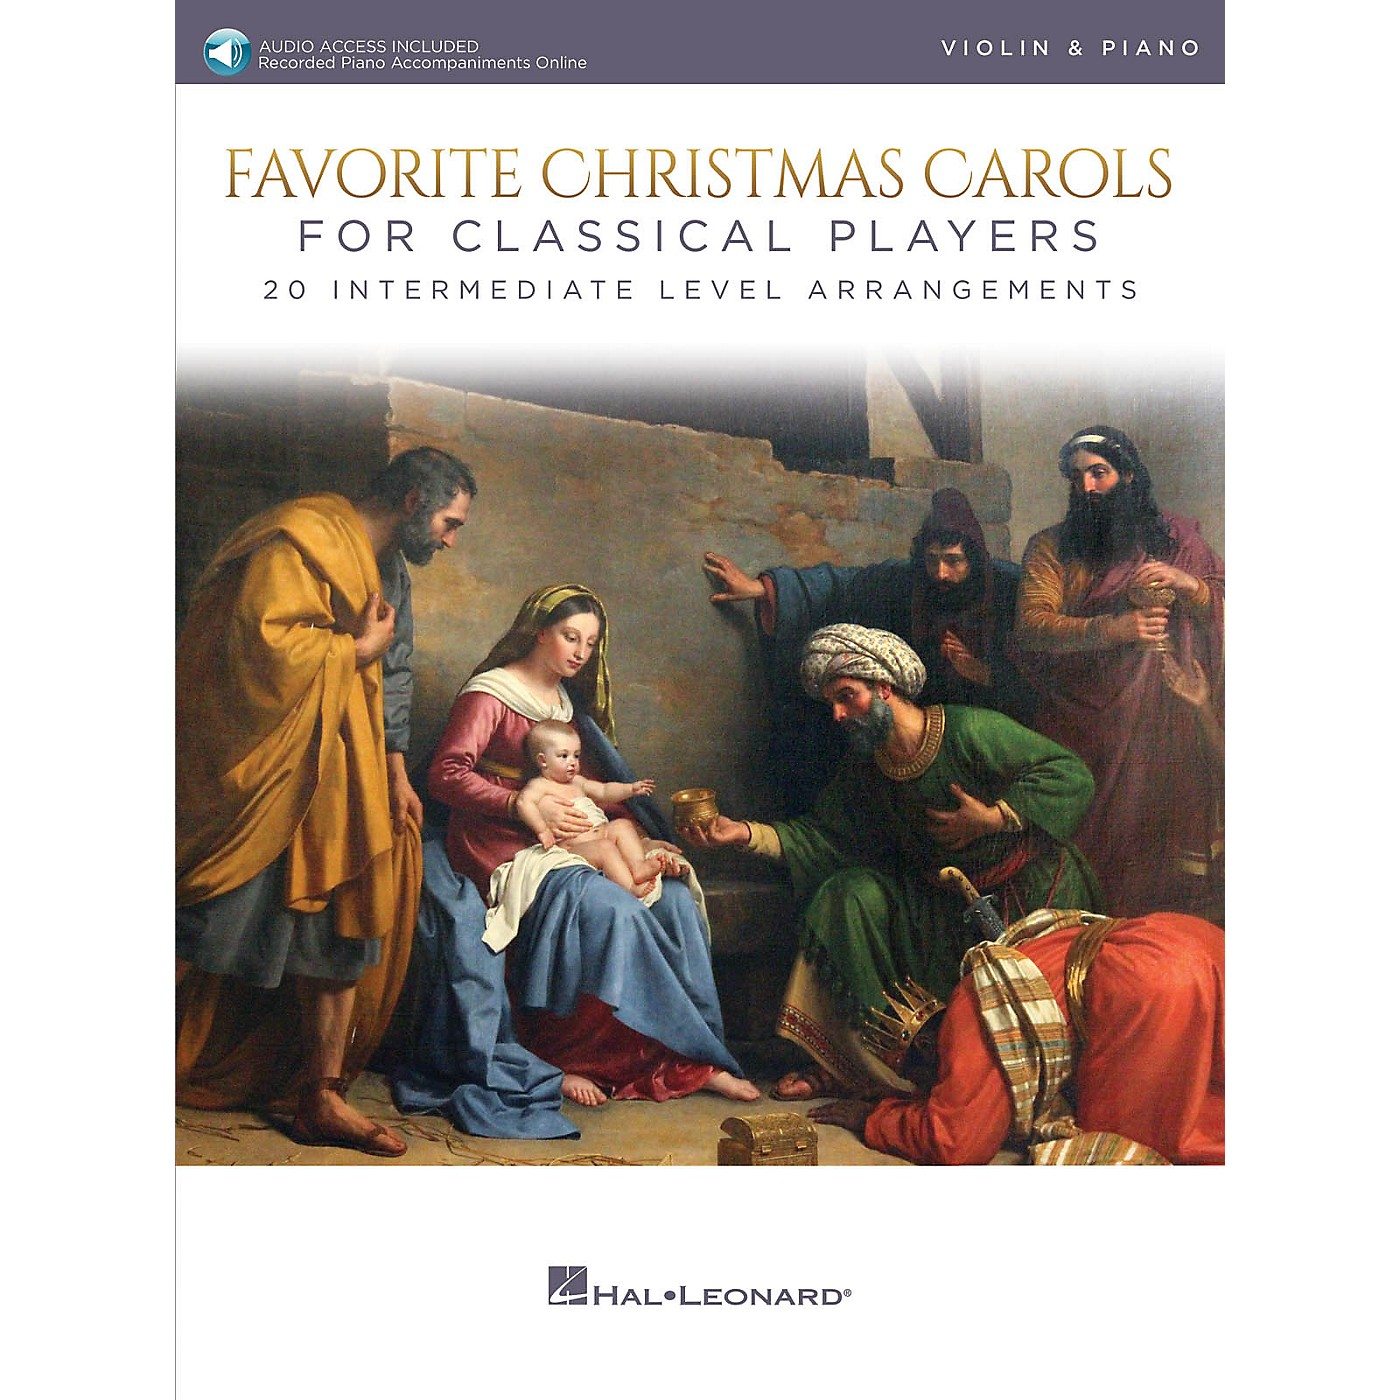 Hal Leonard Favorite Christmas Carols for Classical Players - Violin and Piano Book/Audio Online thumbnail